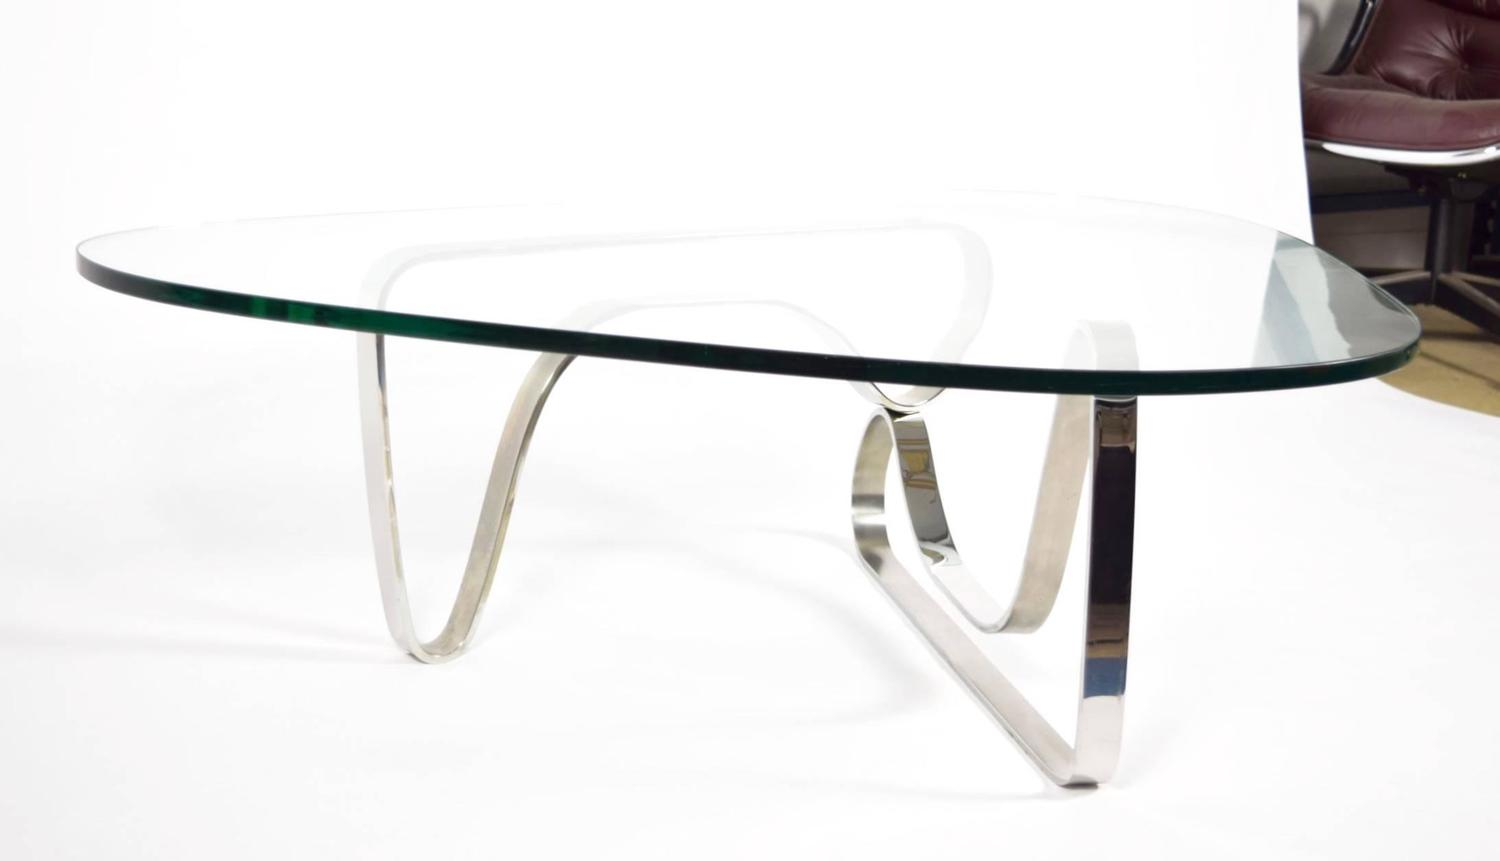 Noguchi Style Coffee Table With Stainless Steel Base For Sale At 1stdibs